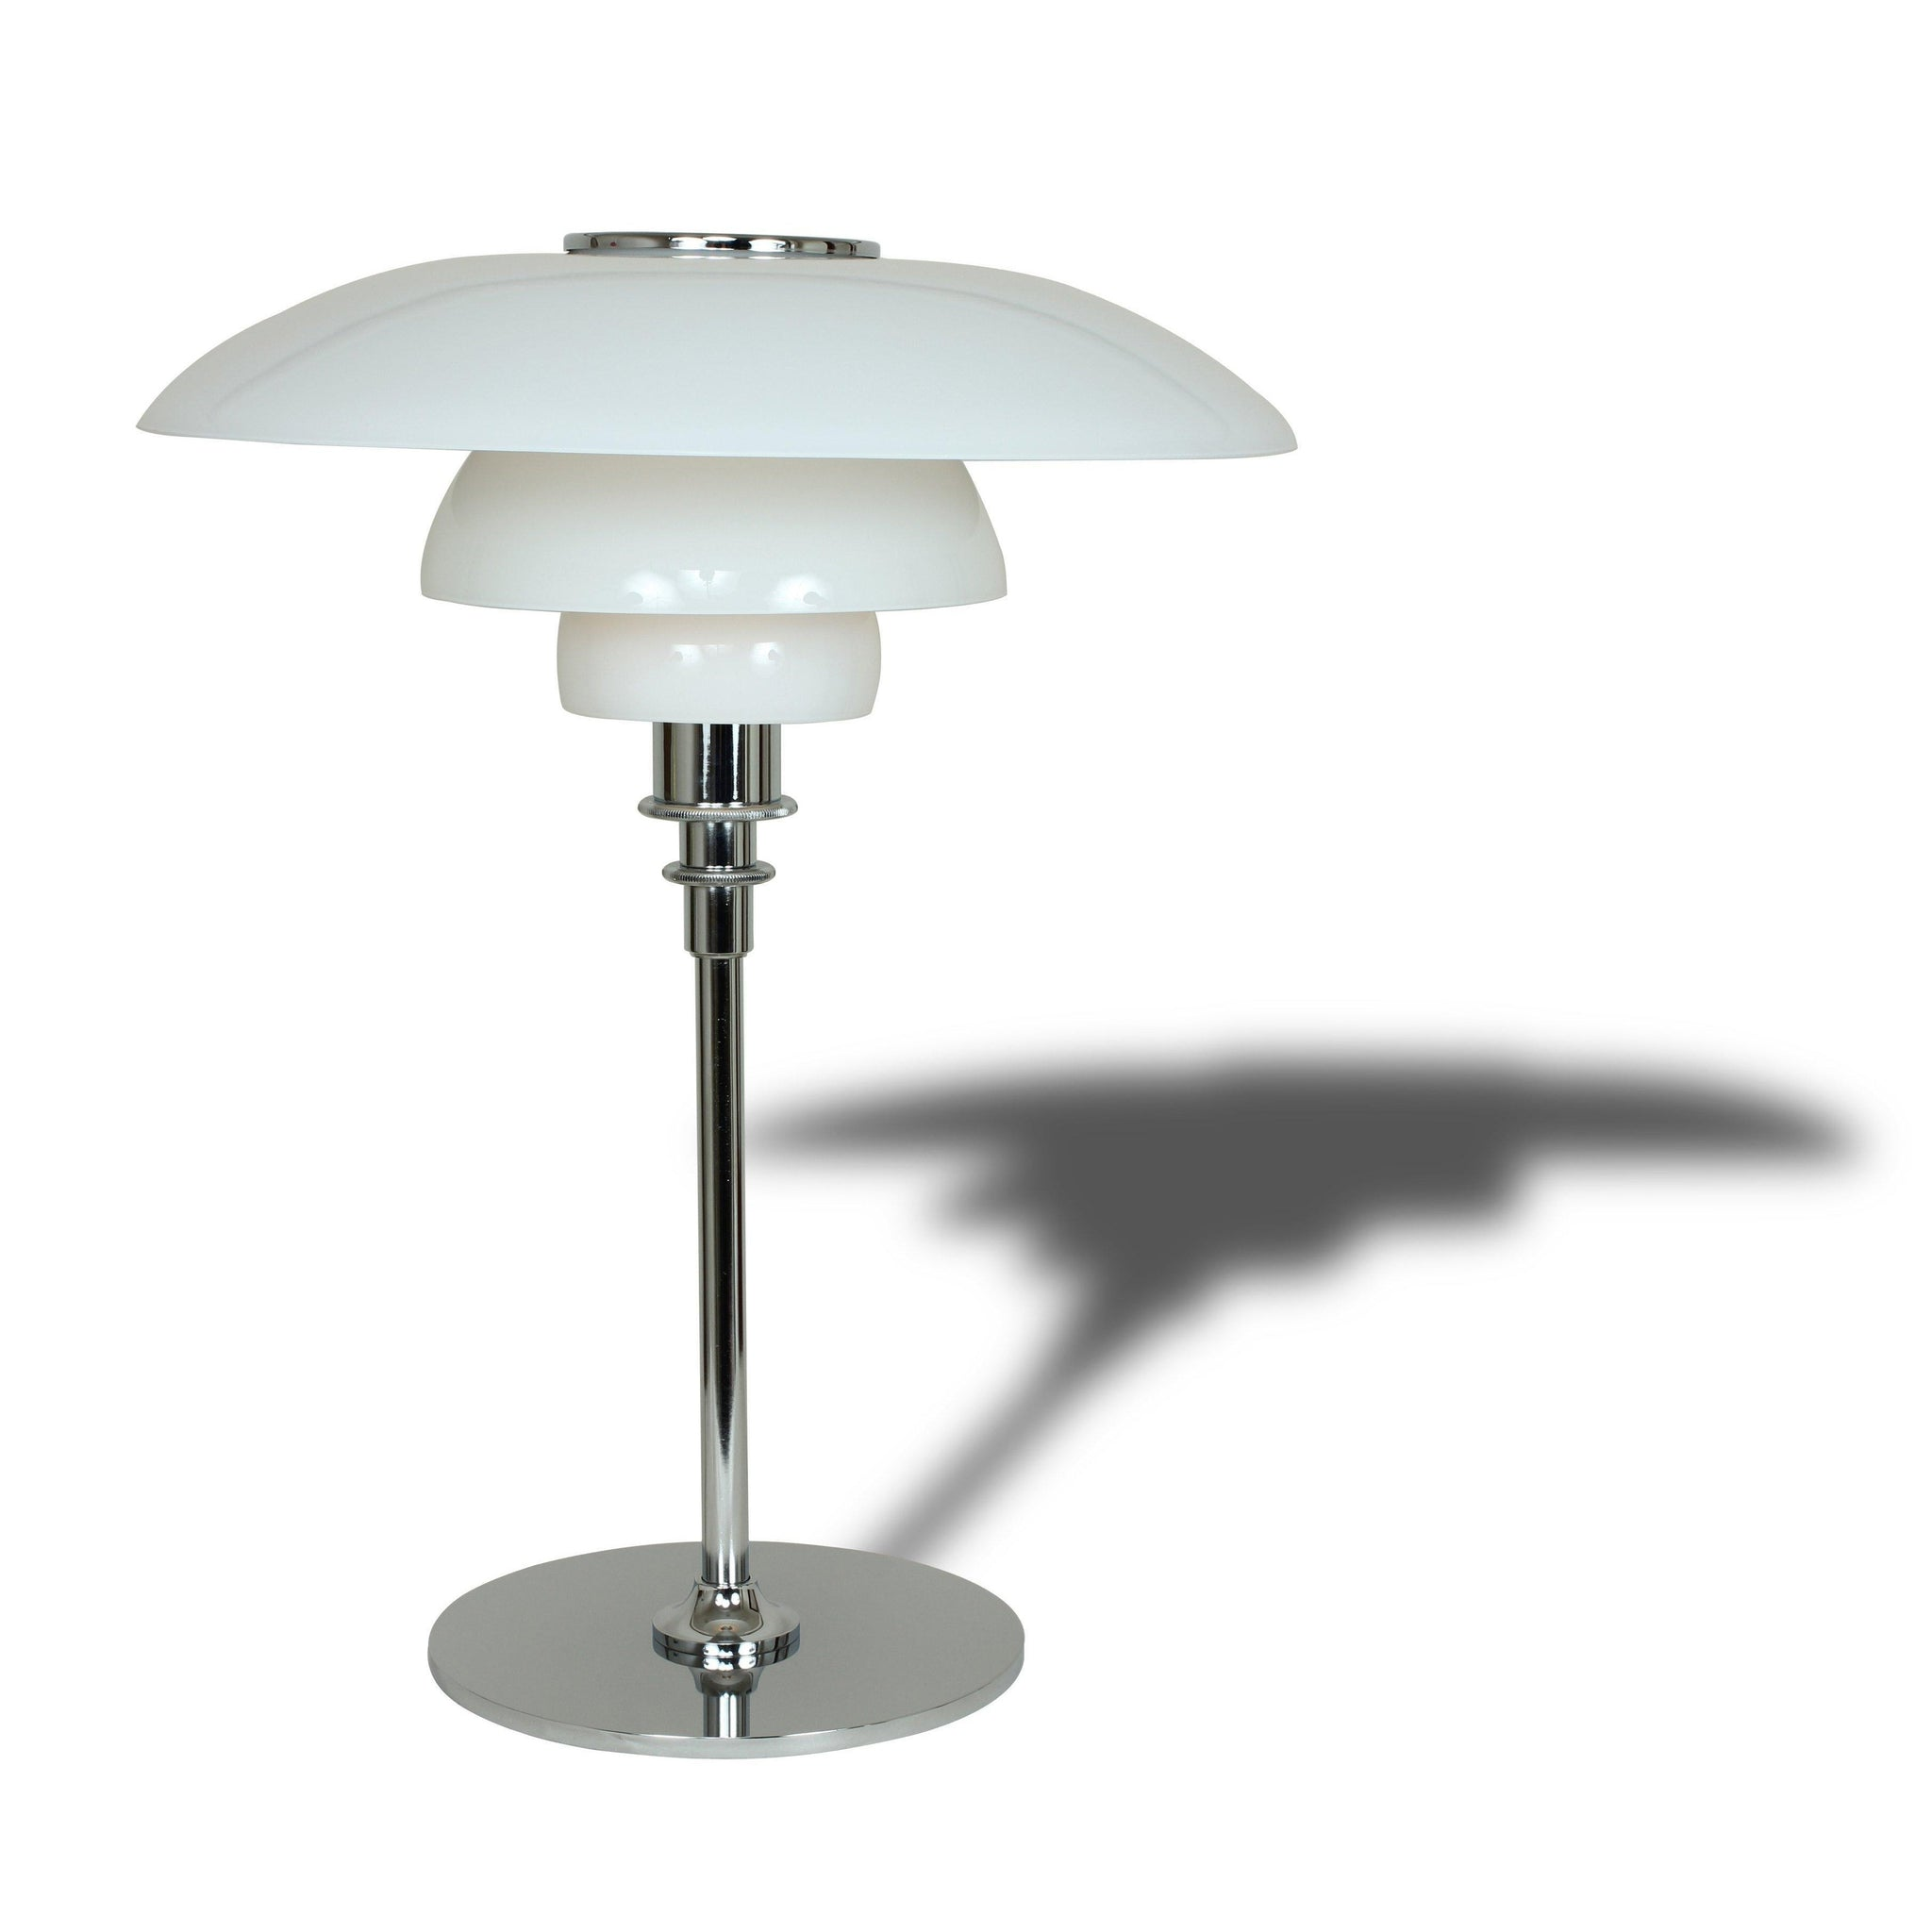 [LN2040CHR] The Herlev Table Lamp